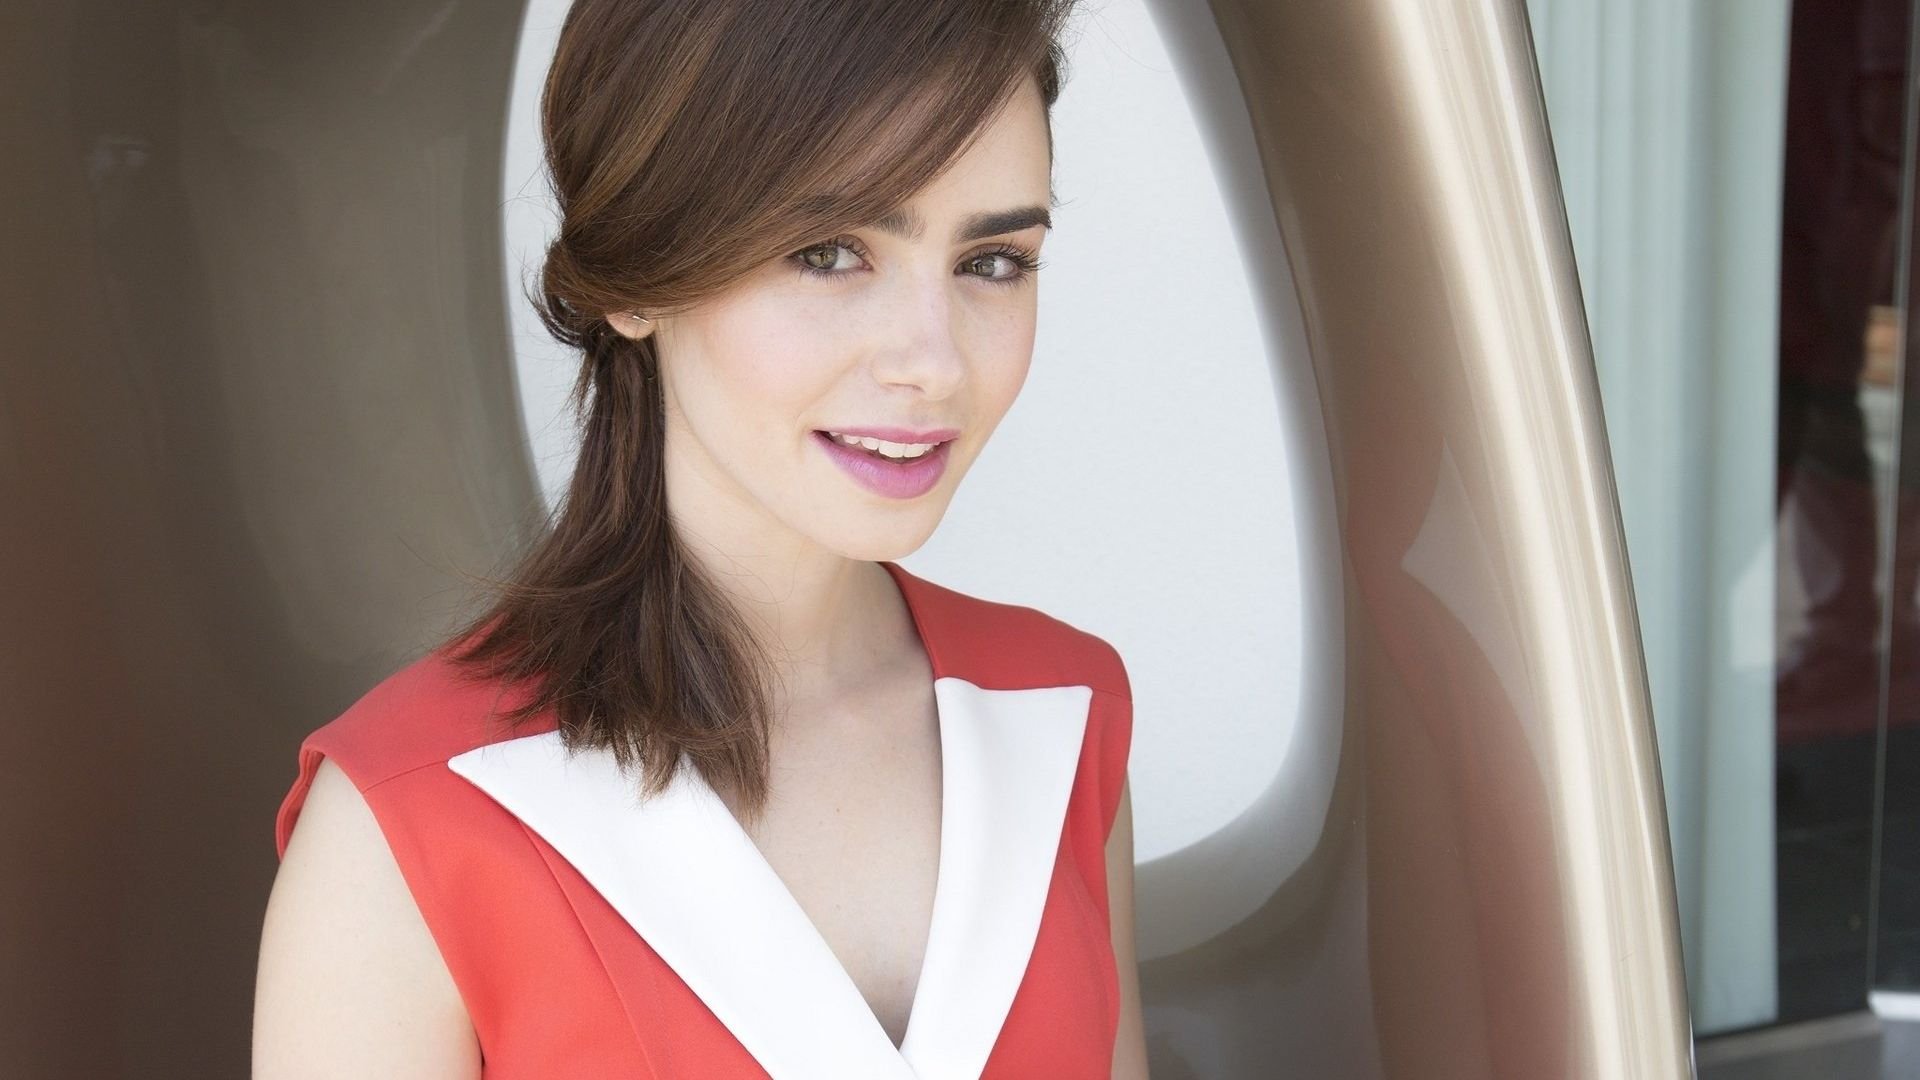 Wallpaper Smile actress, Lily Collins, celebrity